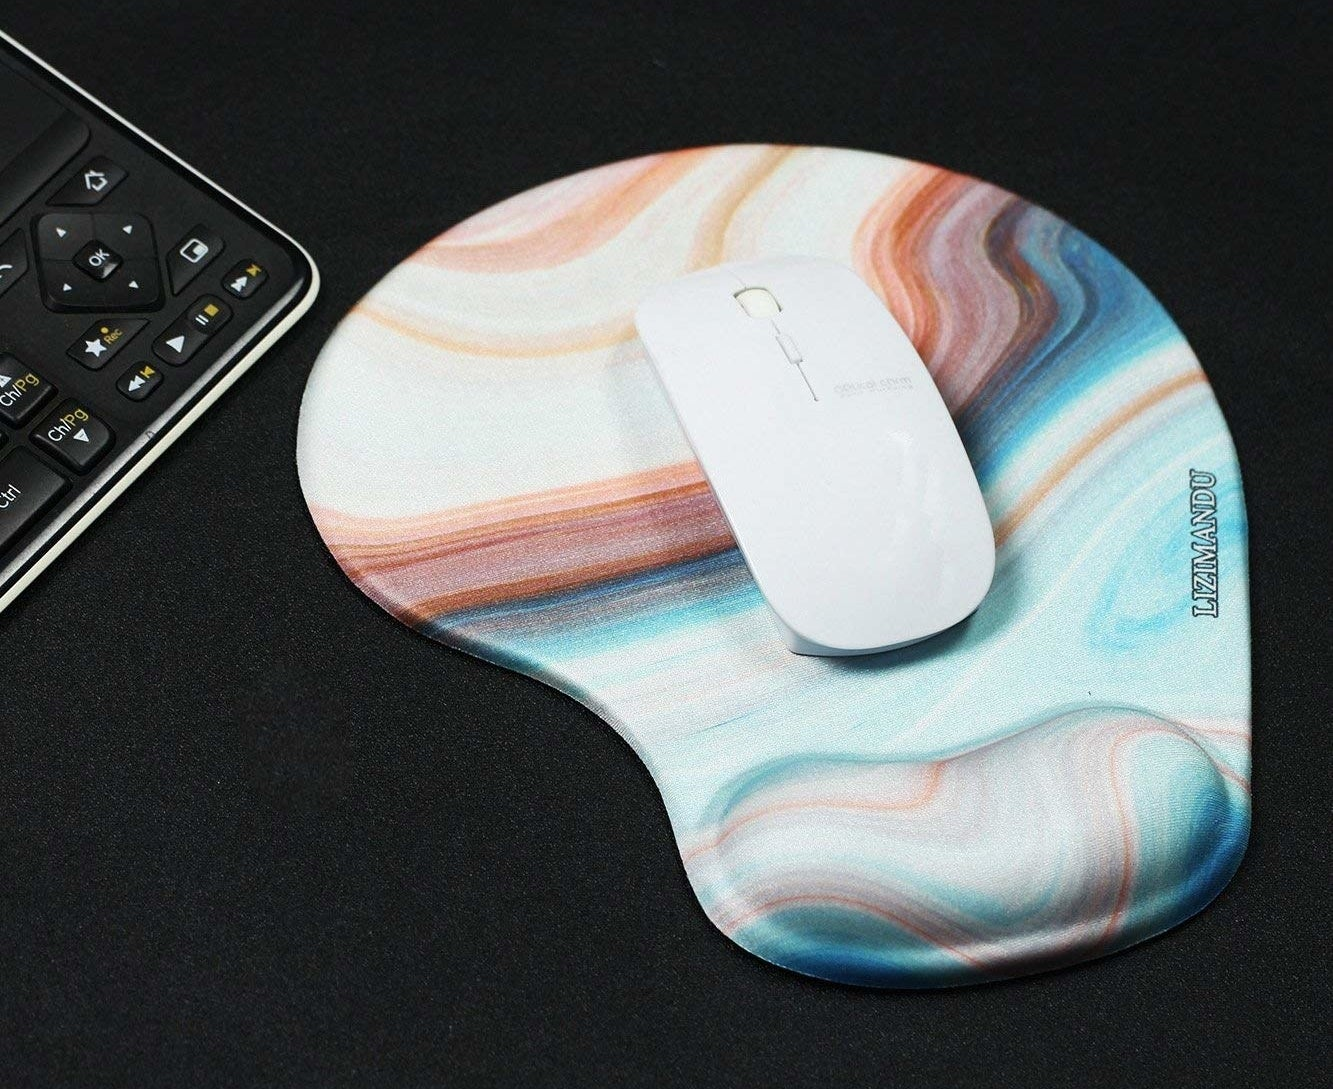 The mouse pad